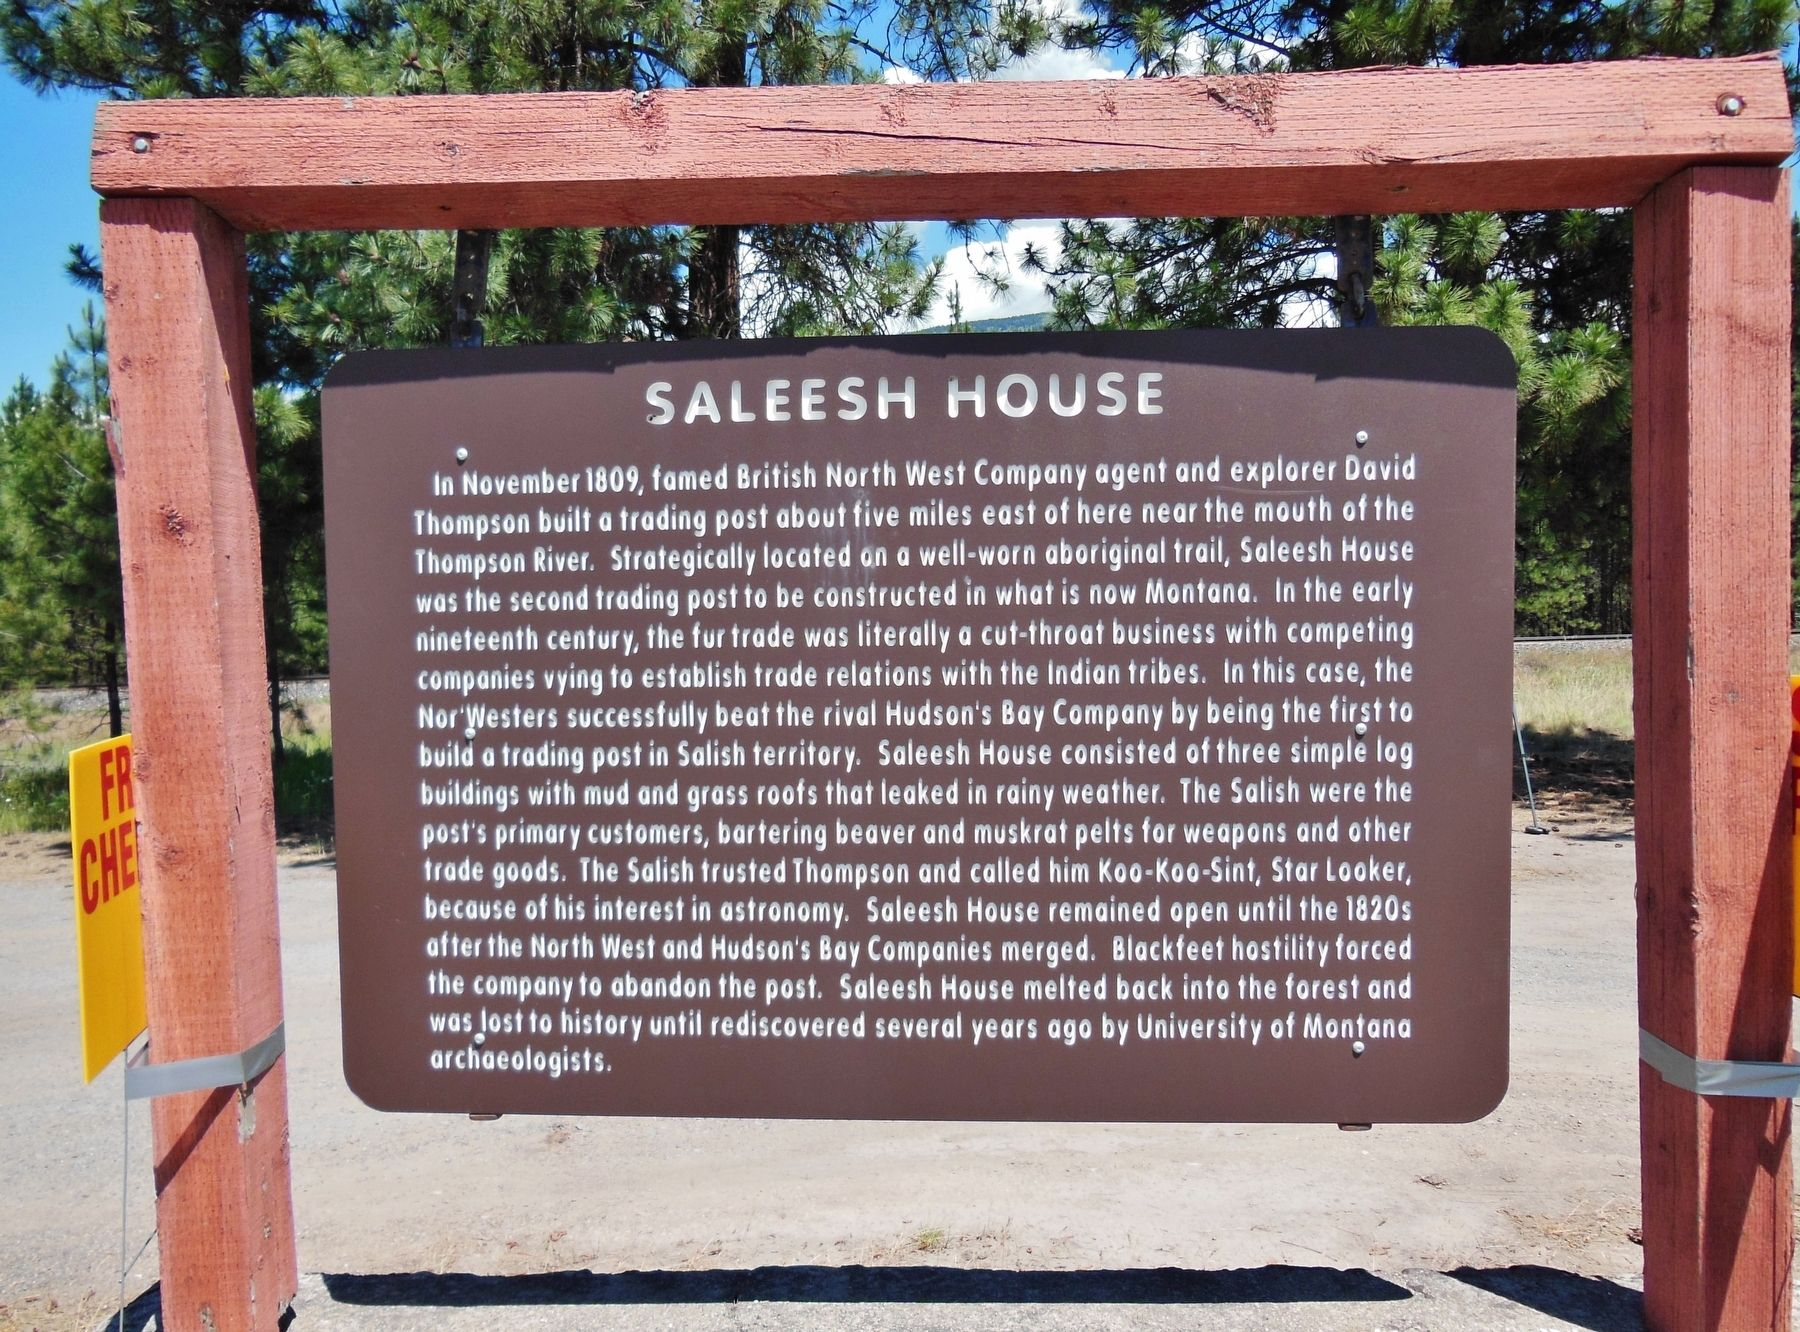 The historical marker describes the Saleesh Trading post, which Thompson established in 1809.